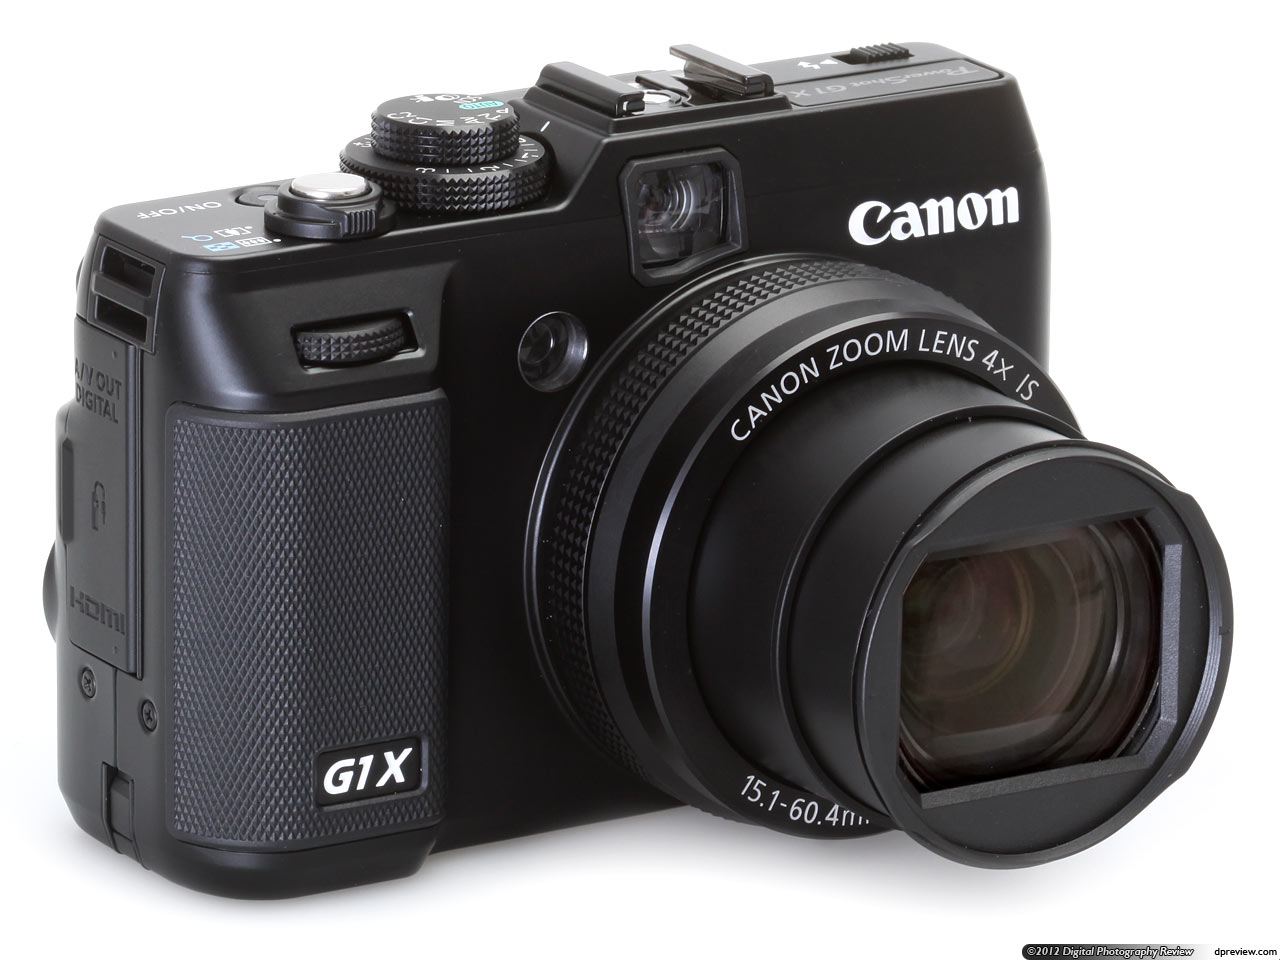 Canon PowerShot G1 X Mark II Digital Camera (Black)